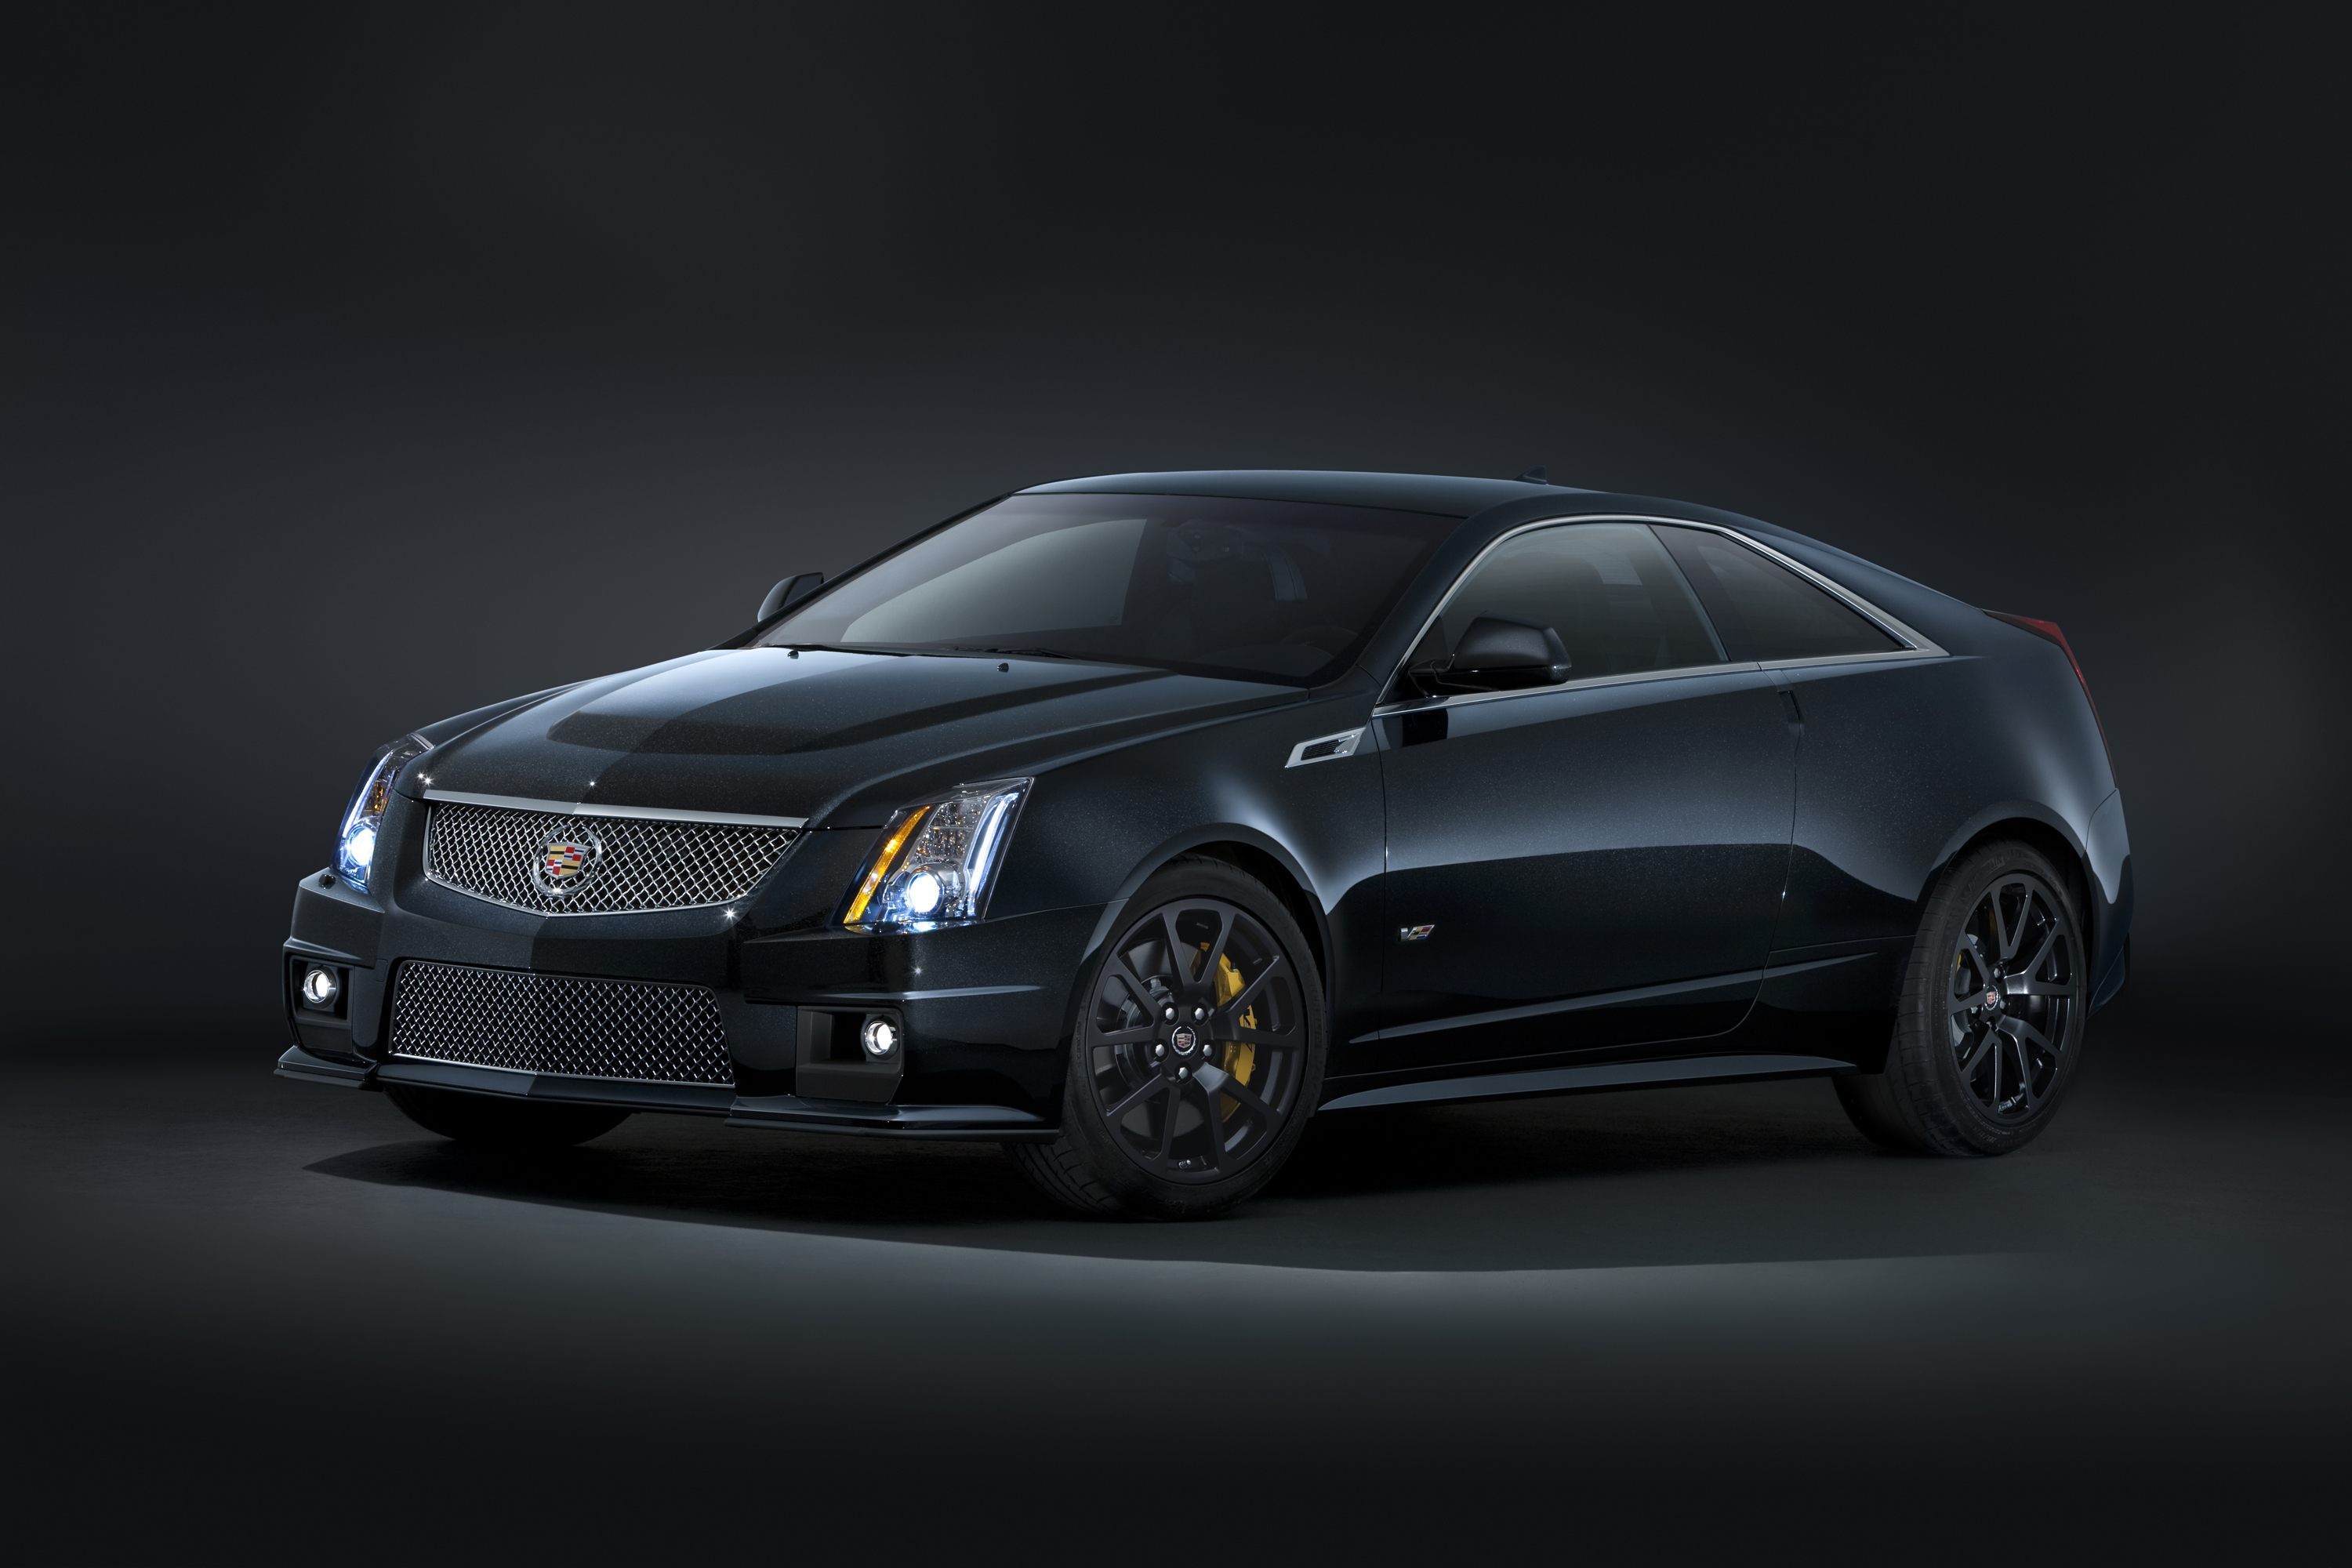 2012 Cadillac Cts Coupe #21